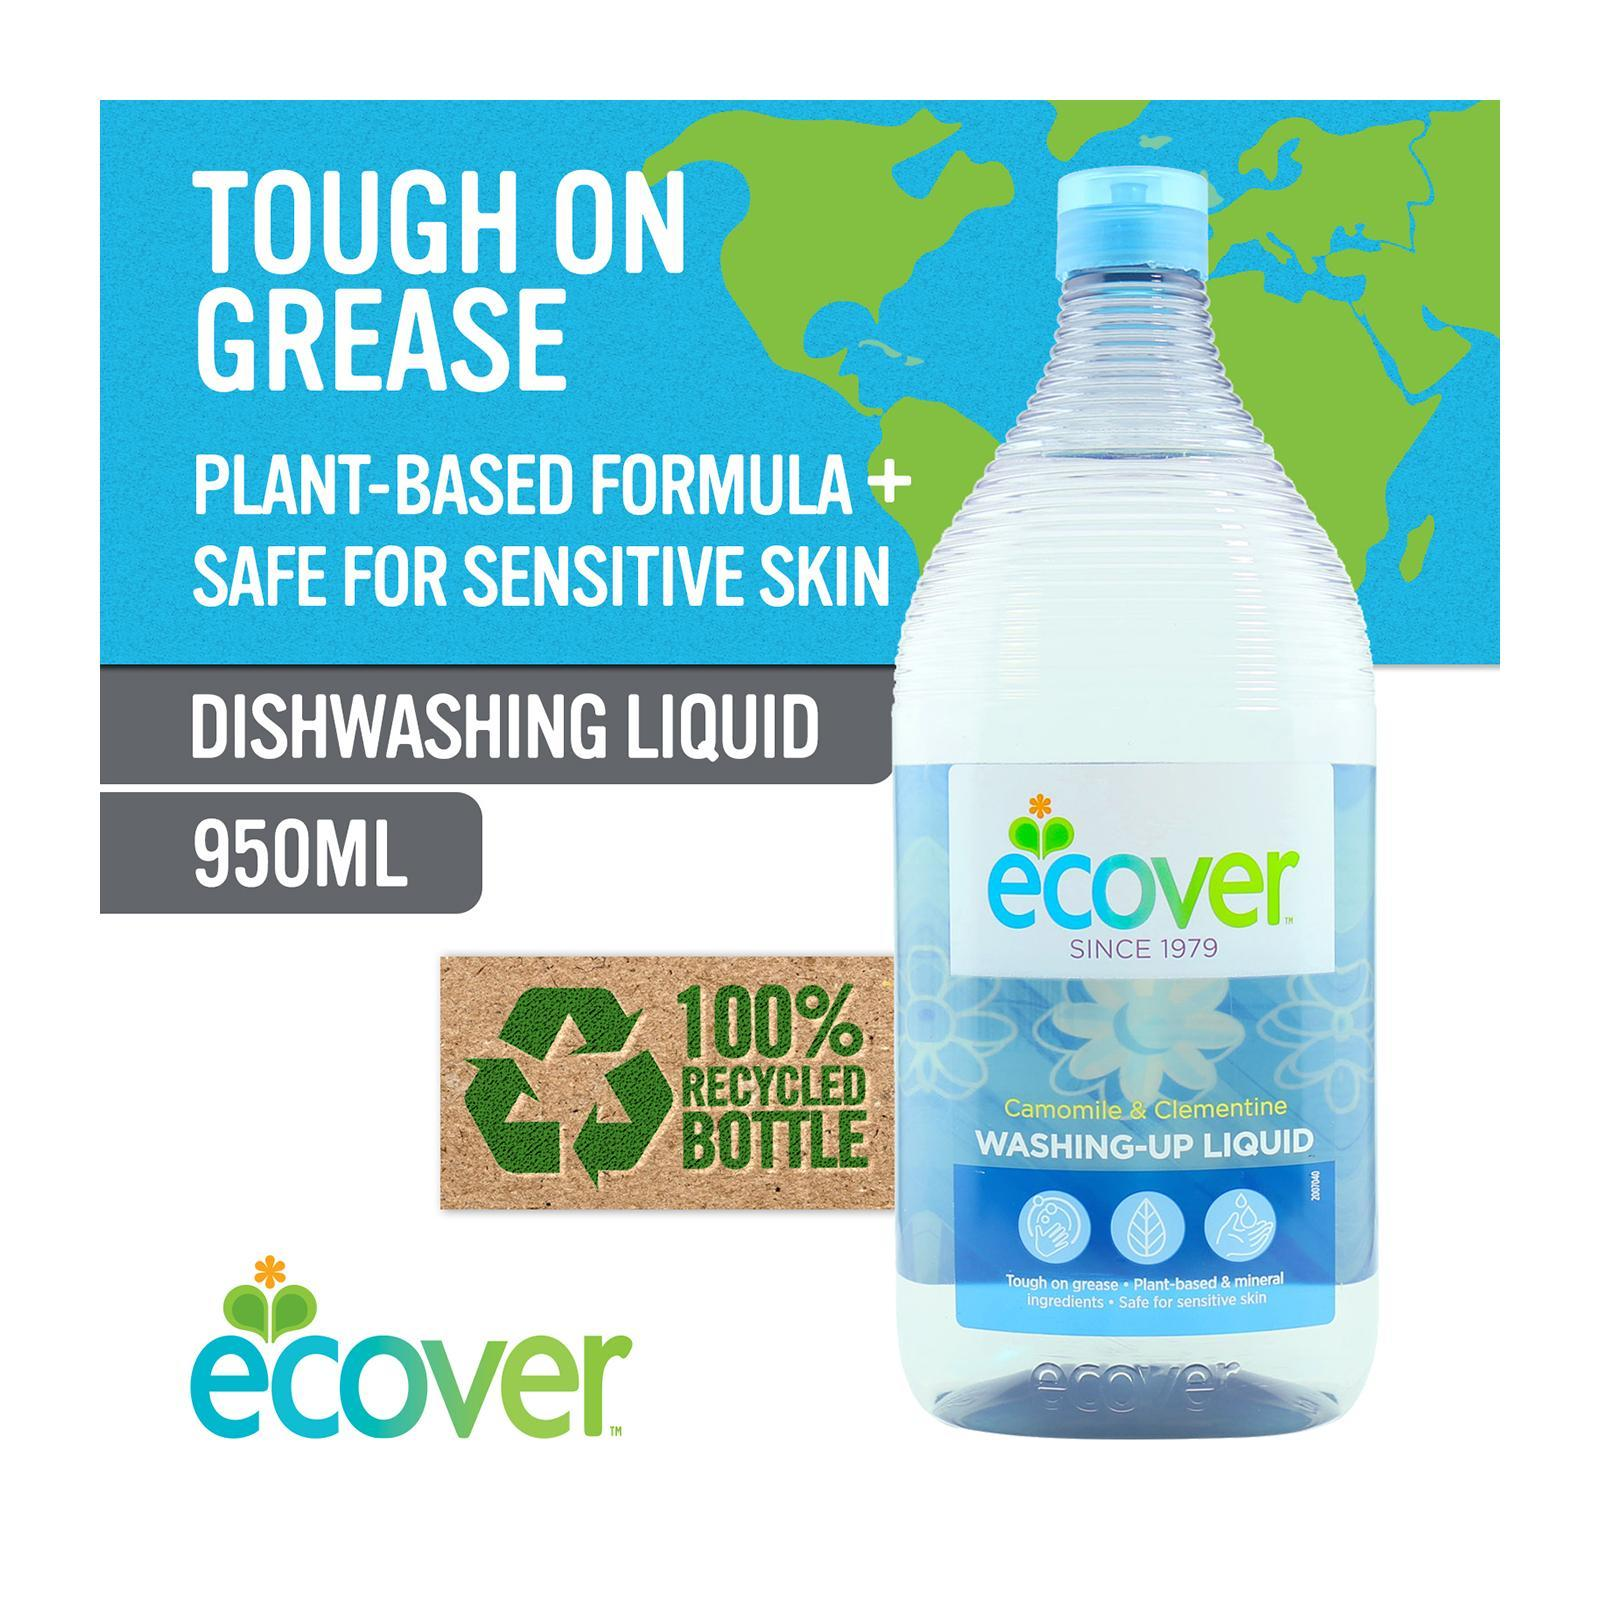 Ecover Washing Up Liquid Camomile And Clementine - By Corlison